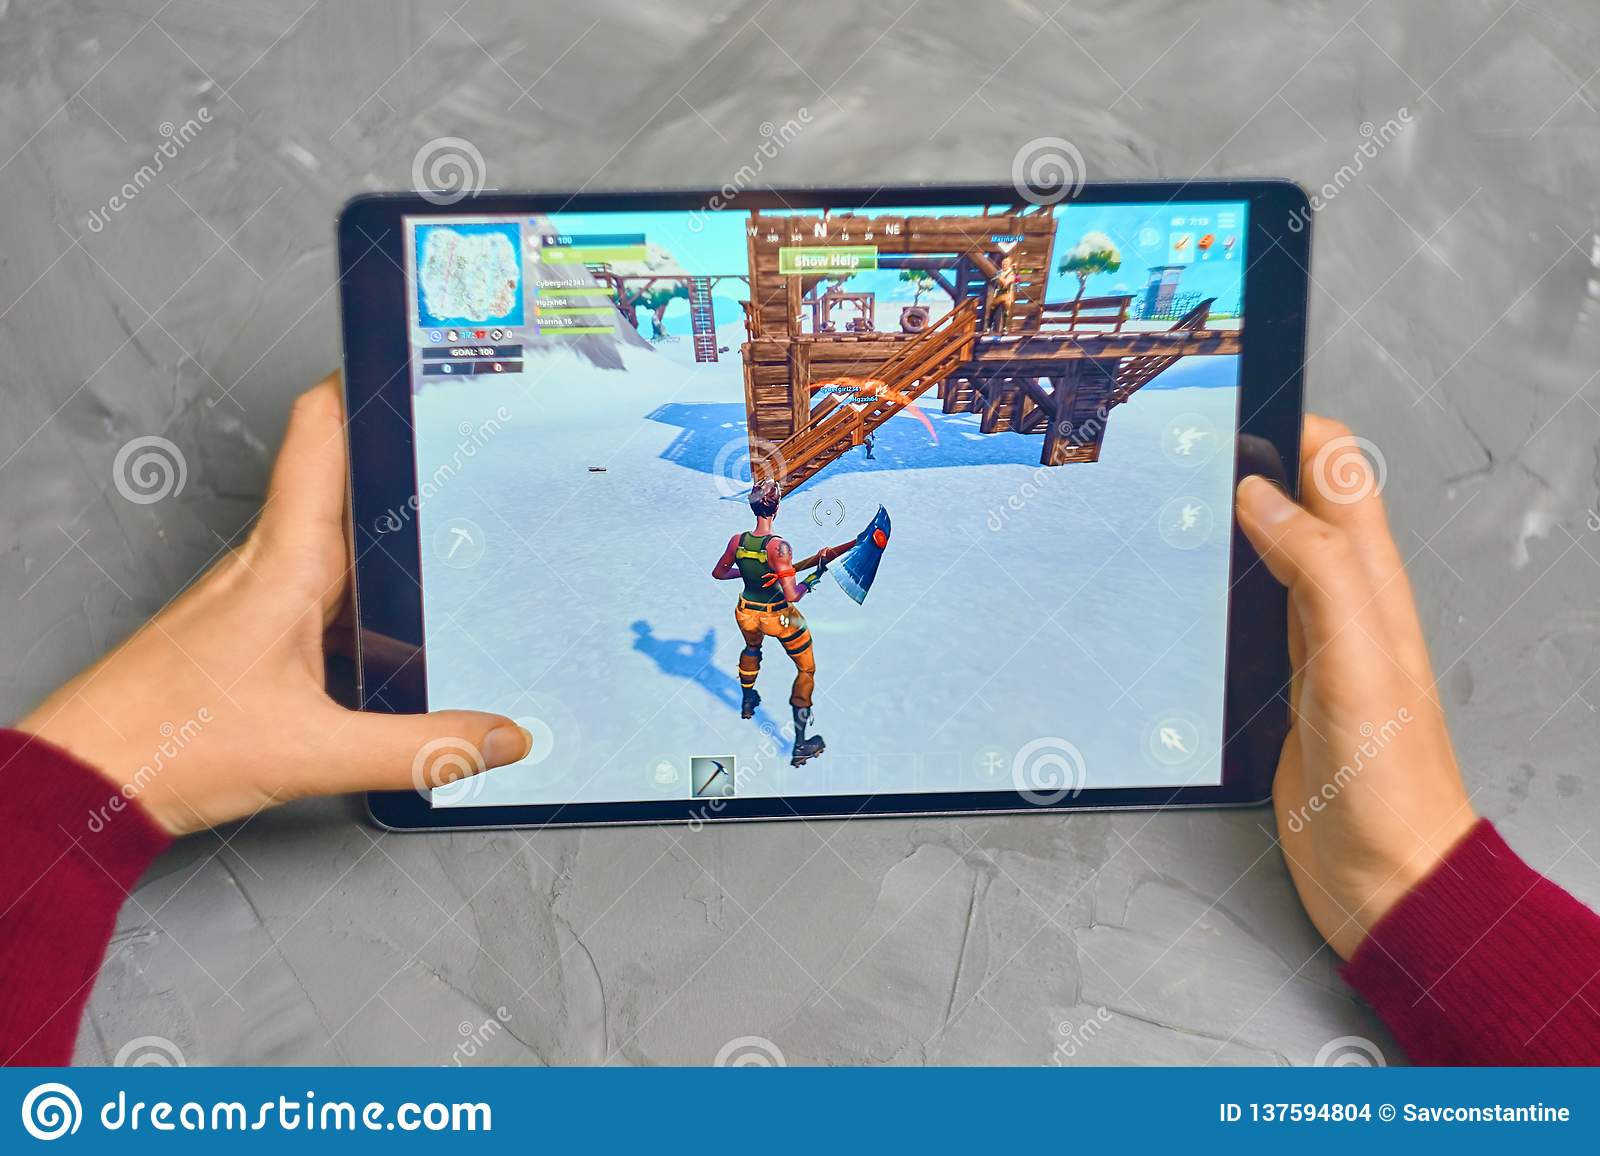 How to download fortnite on your apple computer | HOW TO INSTALL